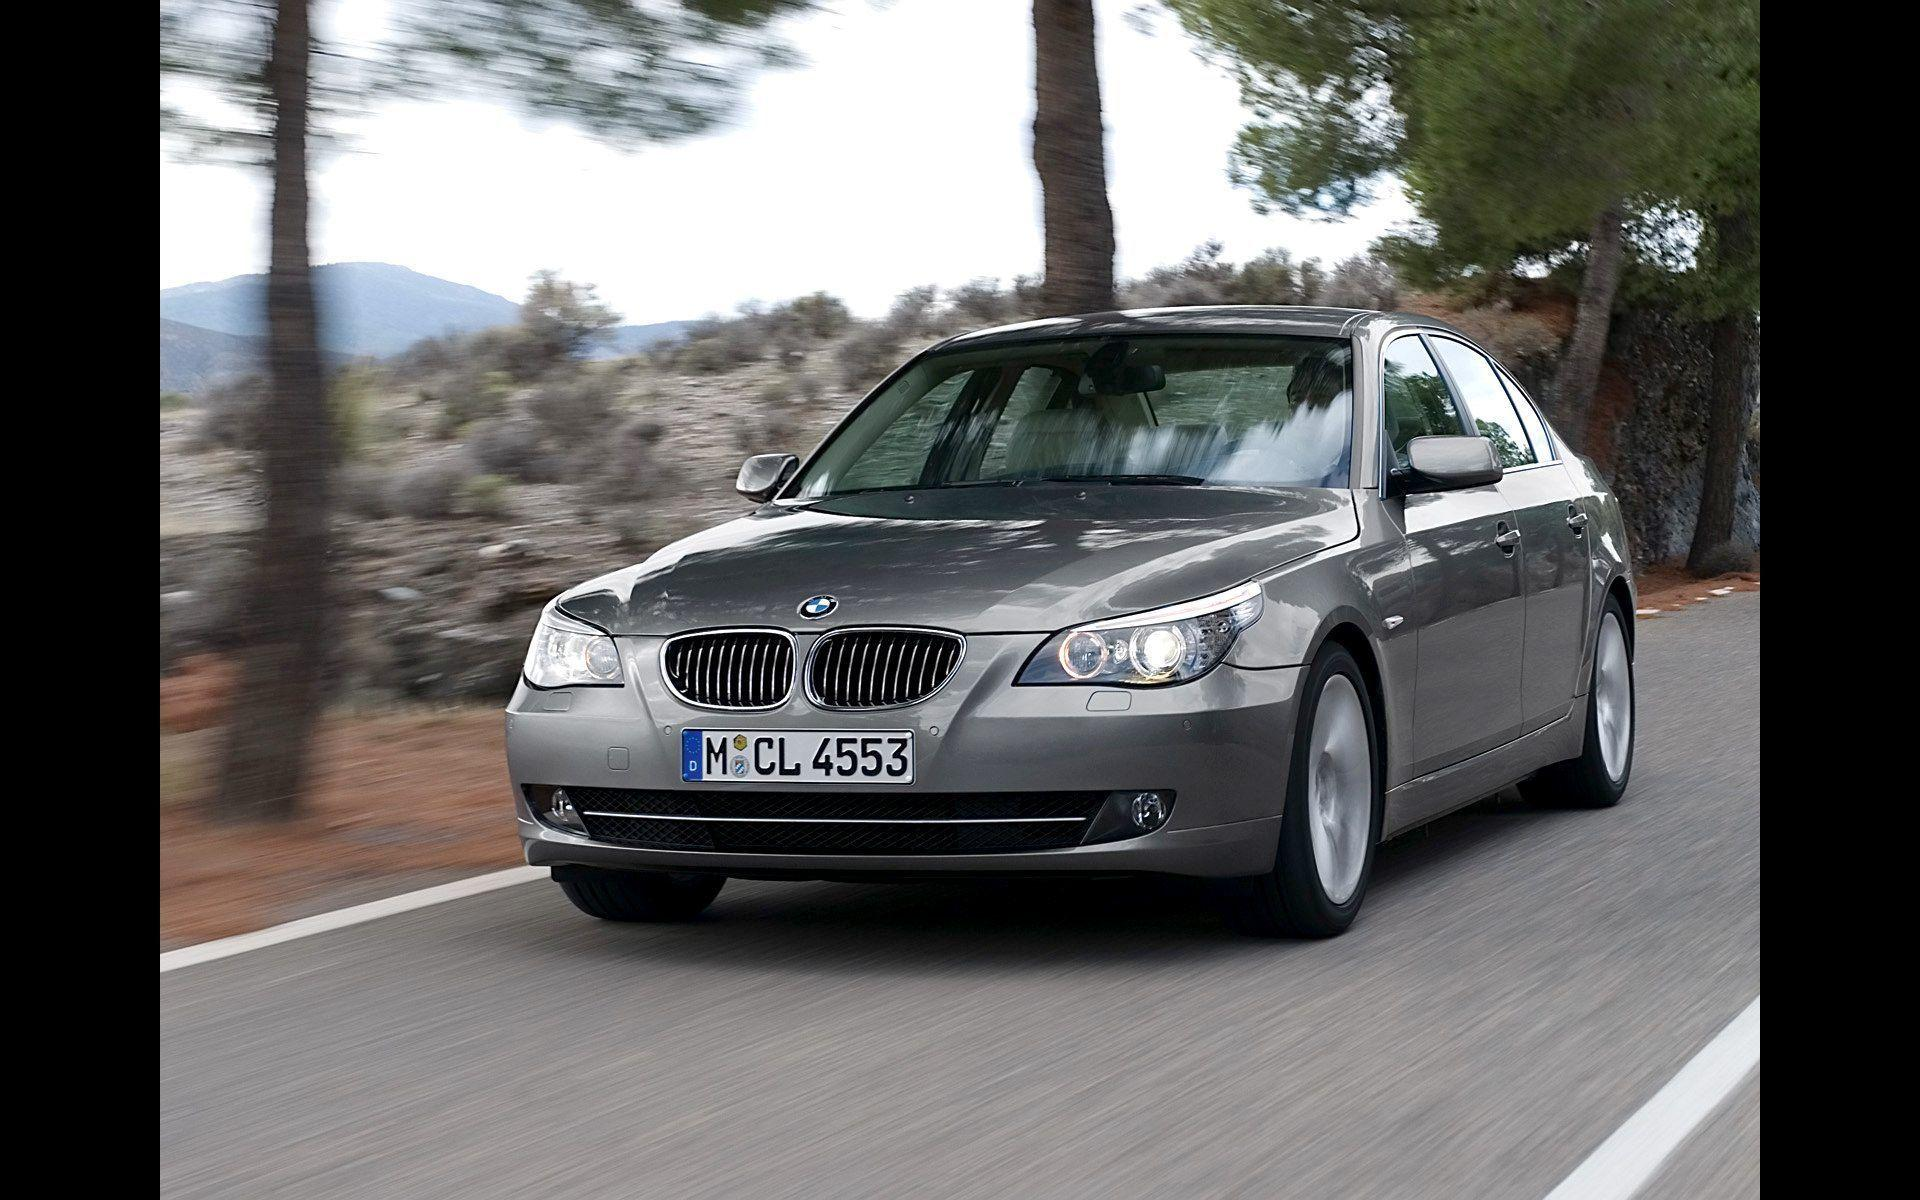 2008 BMW 5 Series Wallpaper 07 - 1920x1200